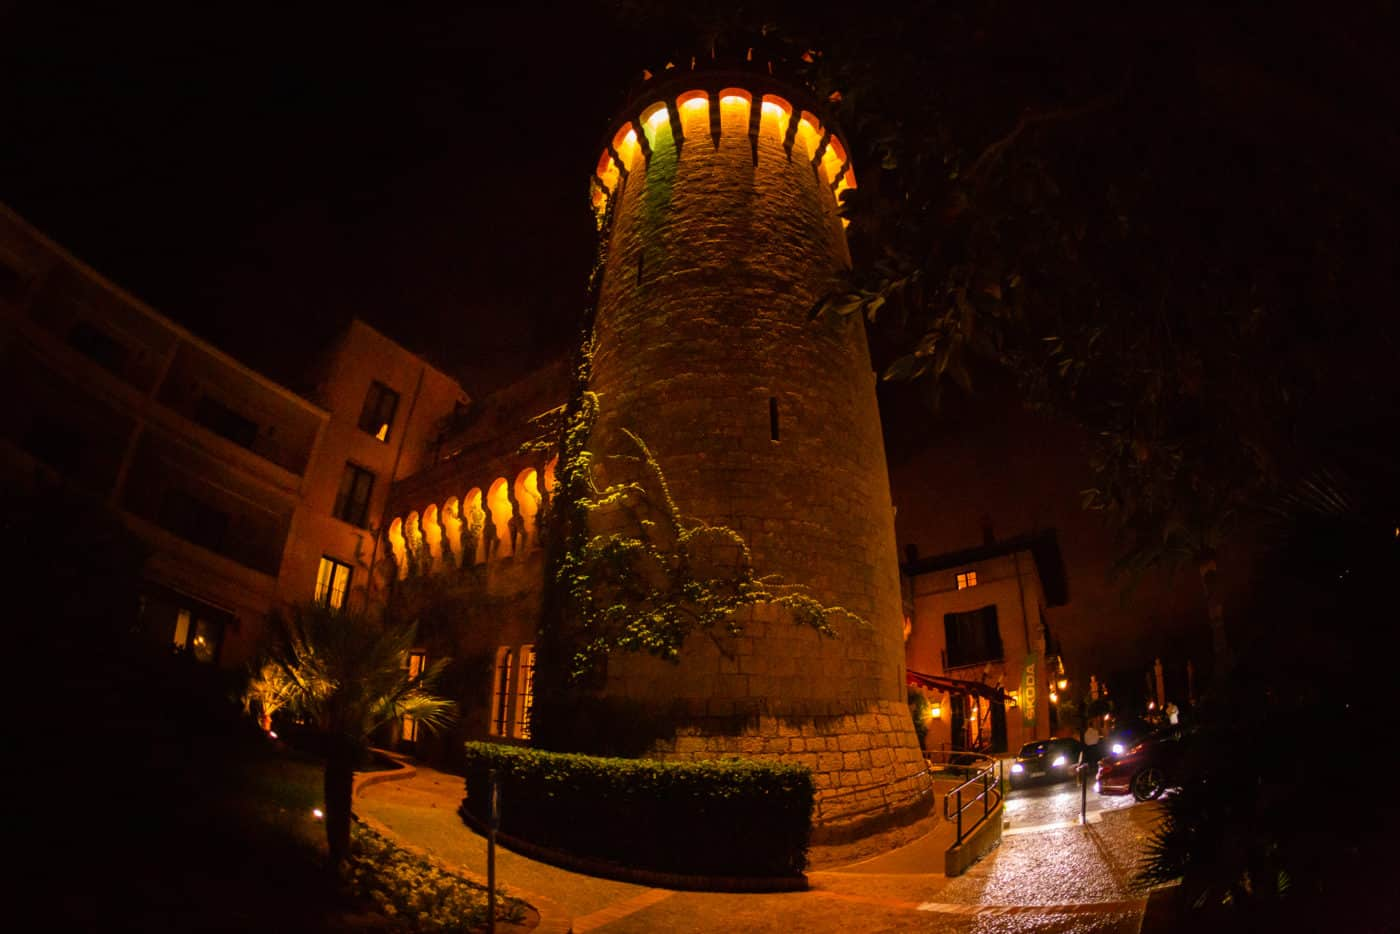 Hotel Castillo Son Vida by night.